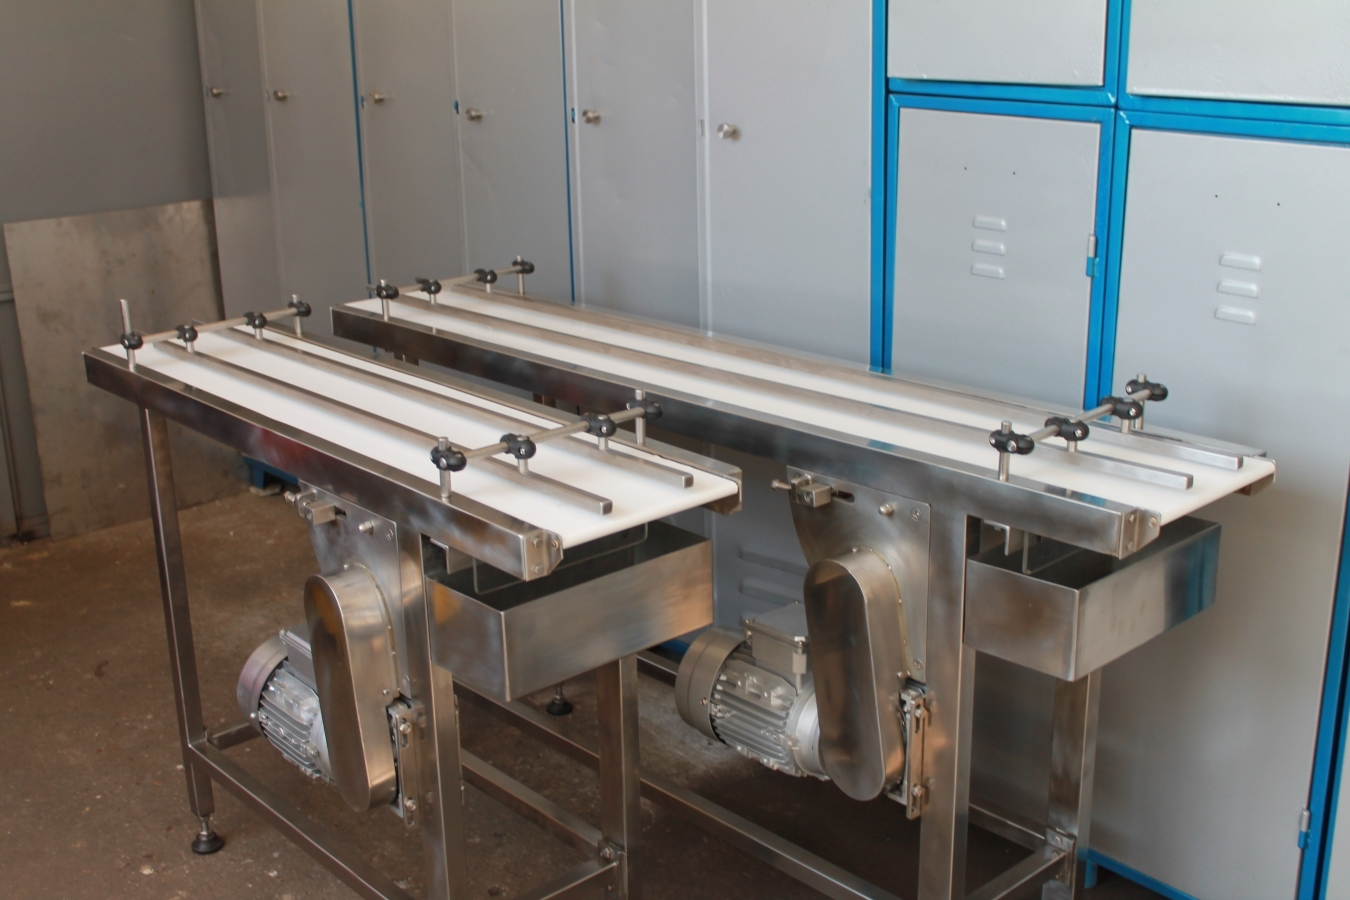 as rs and conveyors & company is the leading innovator in custom low temperature conveyor systems specifically designed to handle extremely cold conditions, our low temperature conveyors perform reliably in frigid environment applications such as frozen food for.